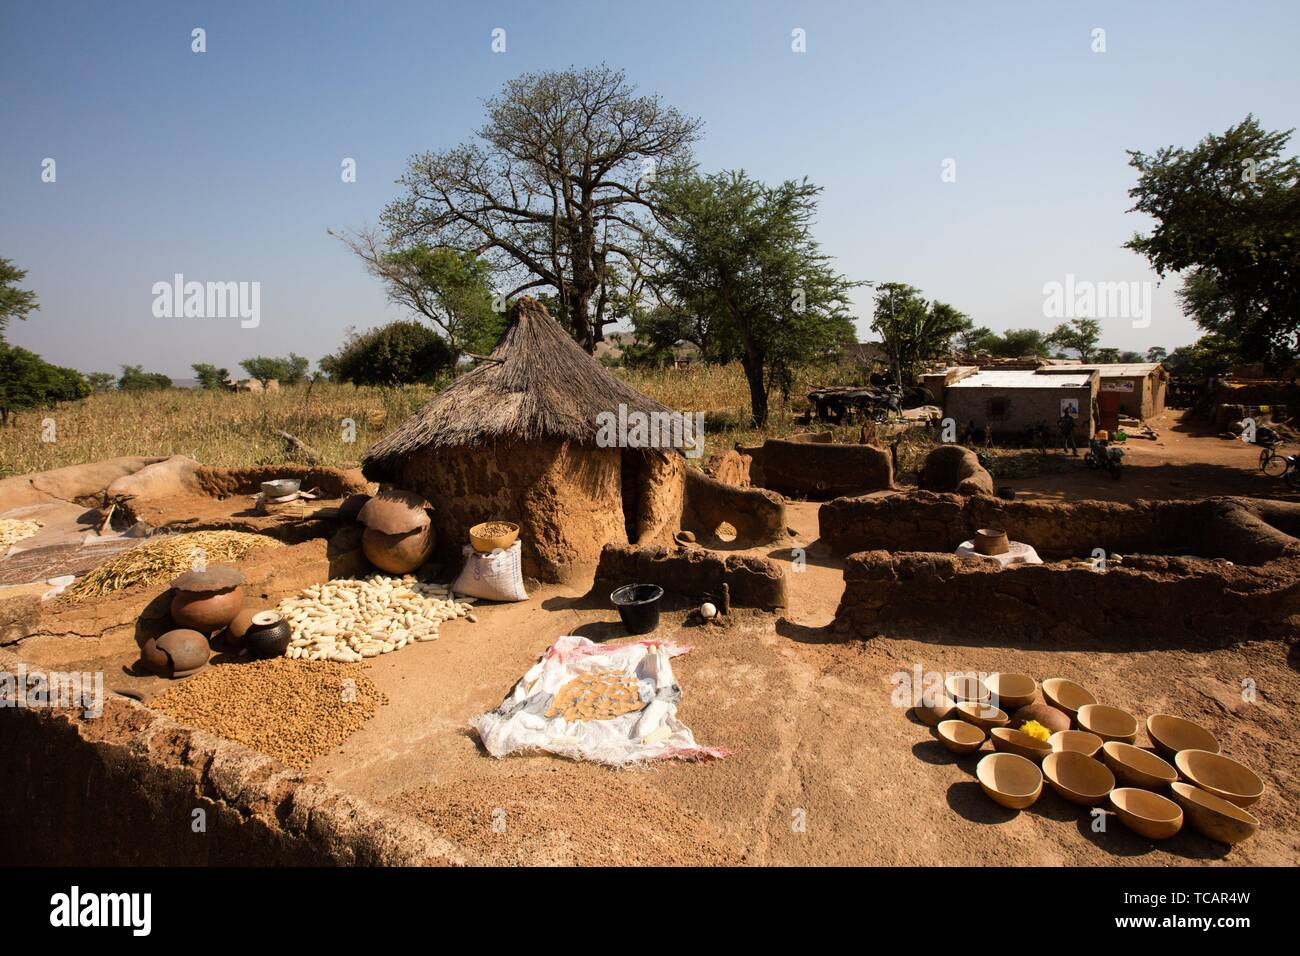 Tools utilized by gold digger, Burkina faso. - Stock Image